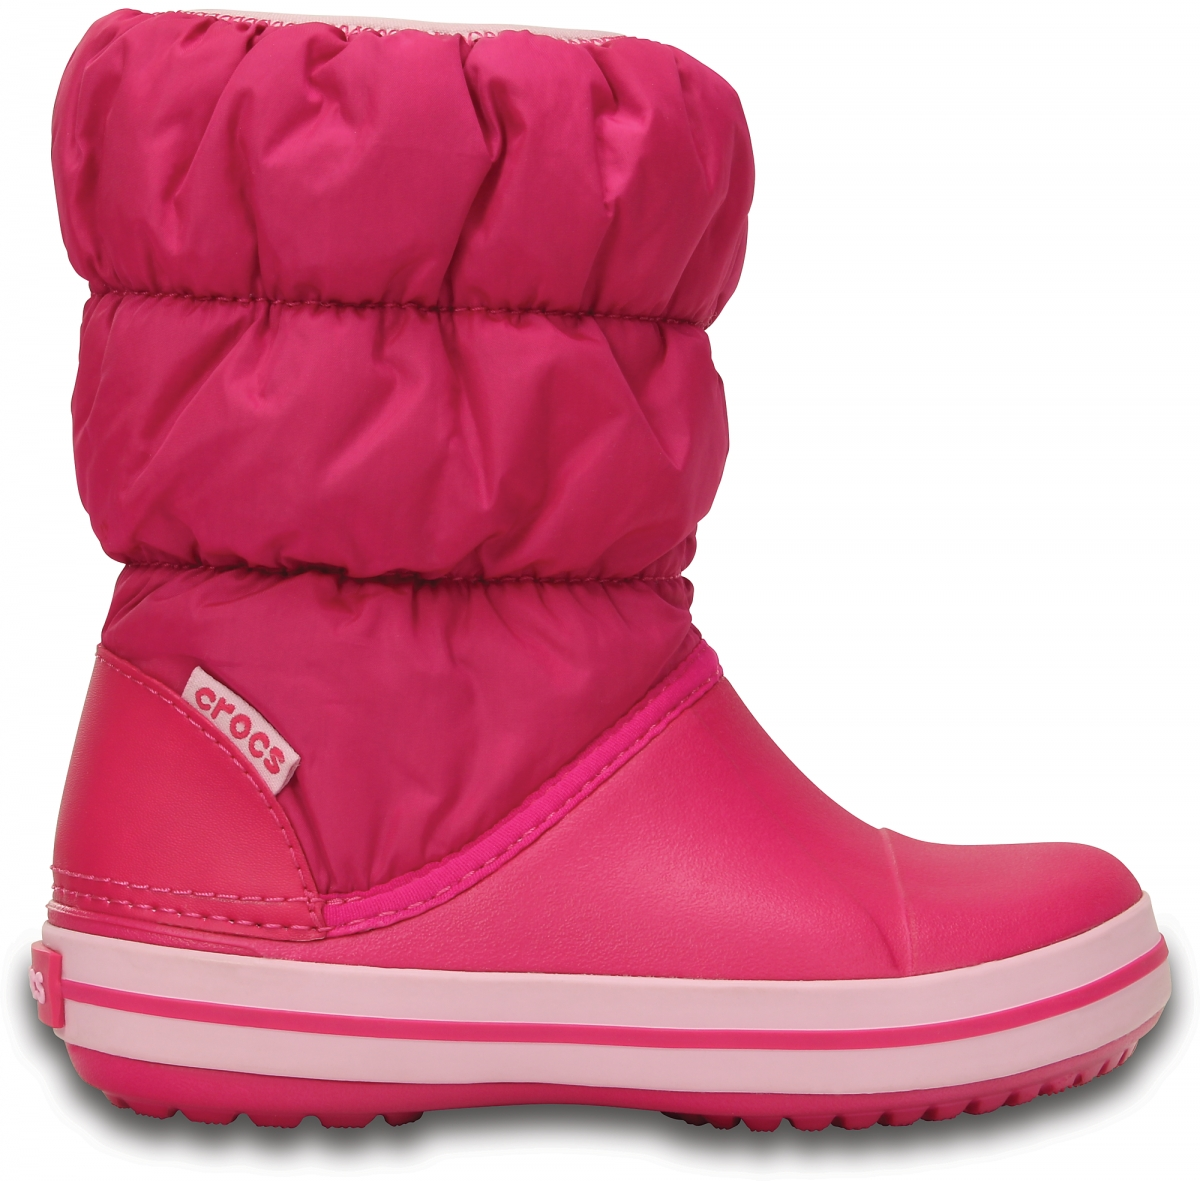 Crocs Winter Puff Boot Kids - Candy Pink, C8 (24-25)